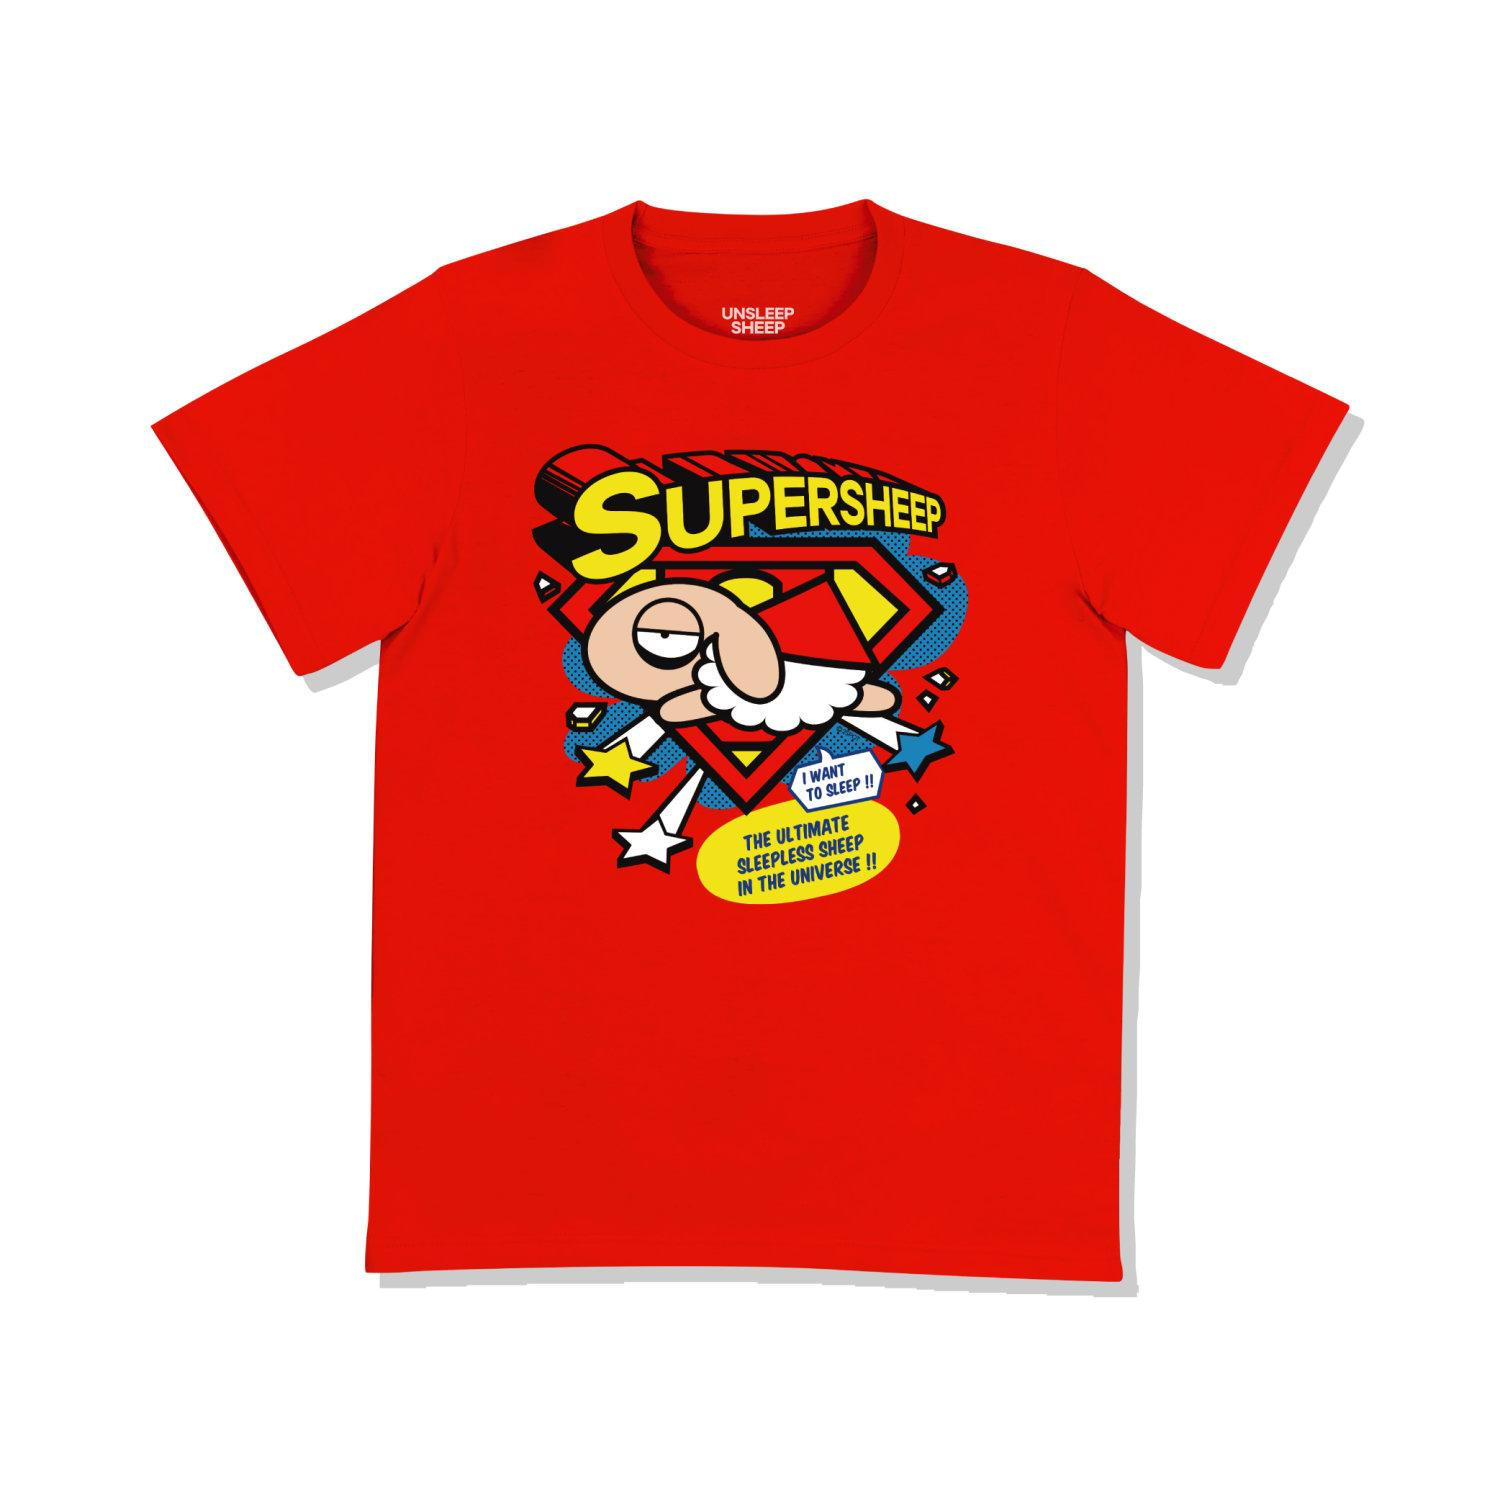 UNSLEEP SHEEP (SUPER SHEEP / RED) T-SHIRT